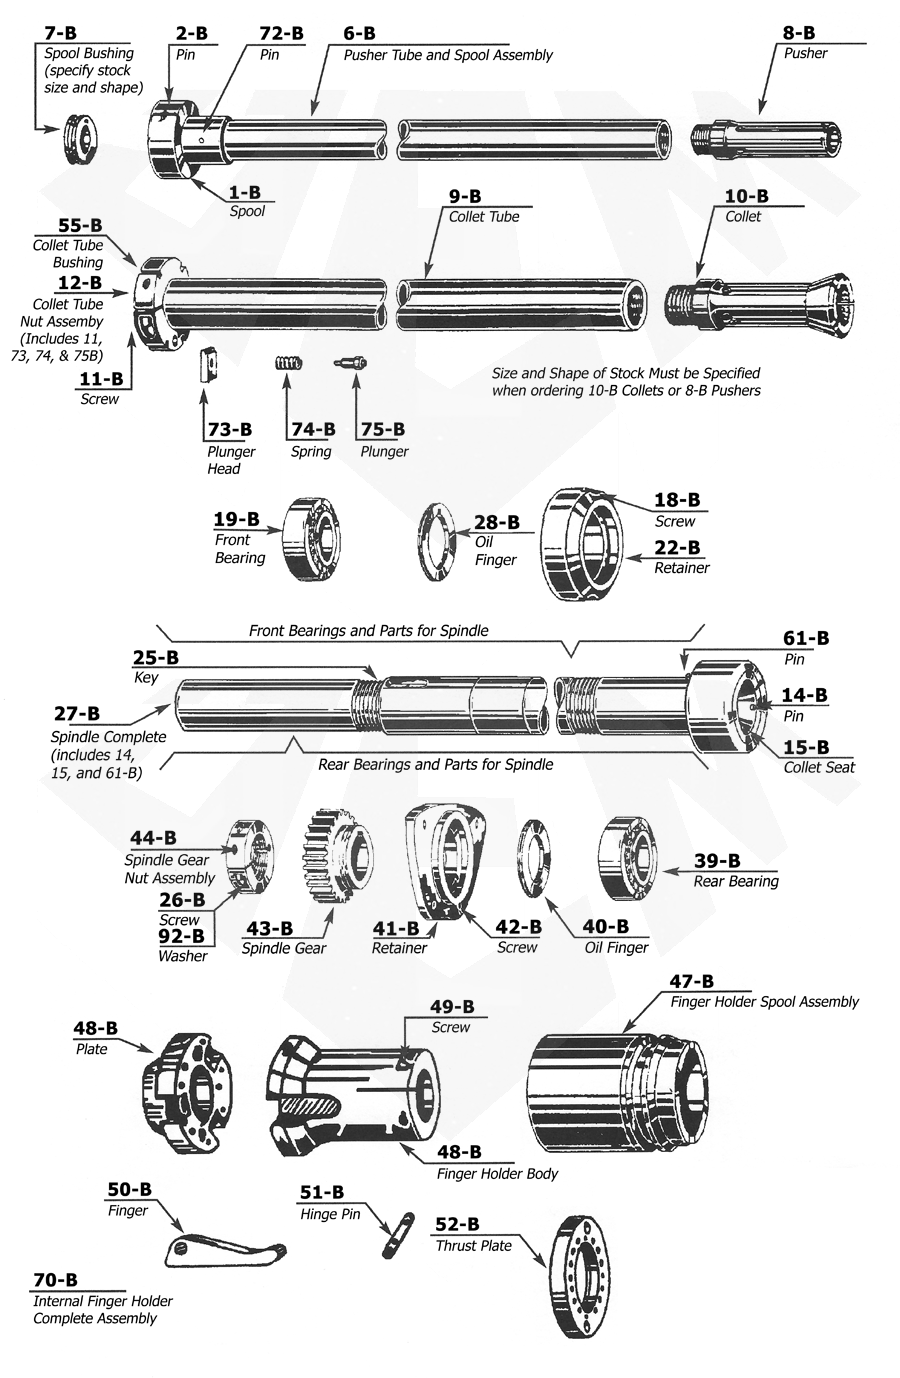 Acme Gridley 5/8 RN-6 Parts Catalog Group B